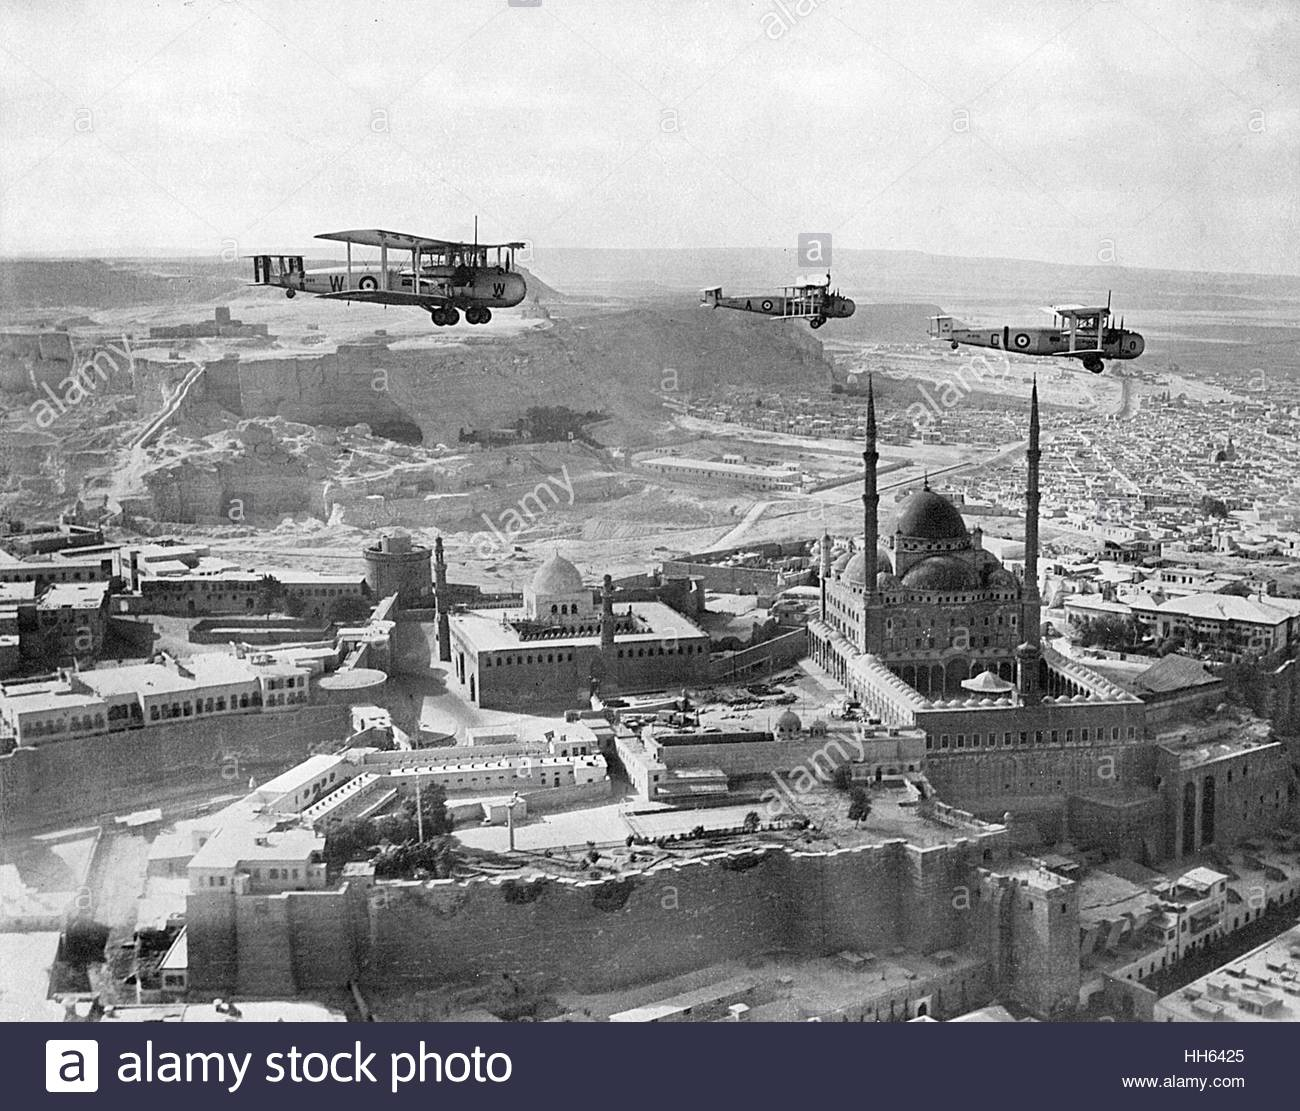 The Citadel of Cairo and Mosque of Mohamed Ali, Egypt, with RAF planes flying overhead. - Stock Image